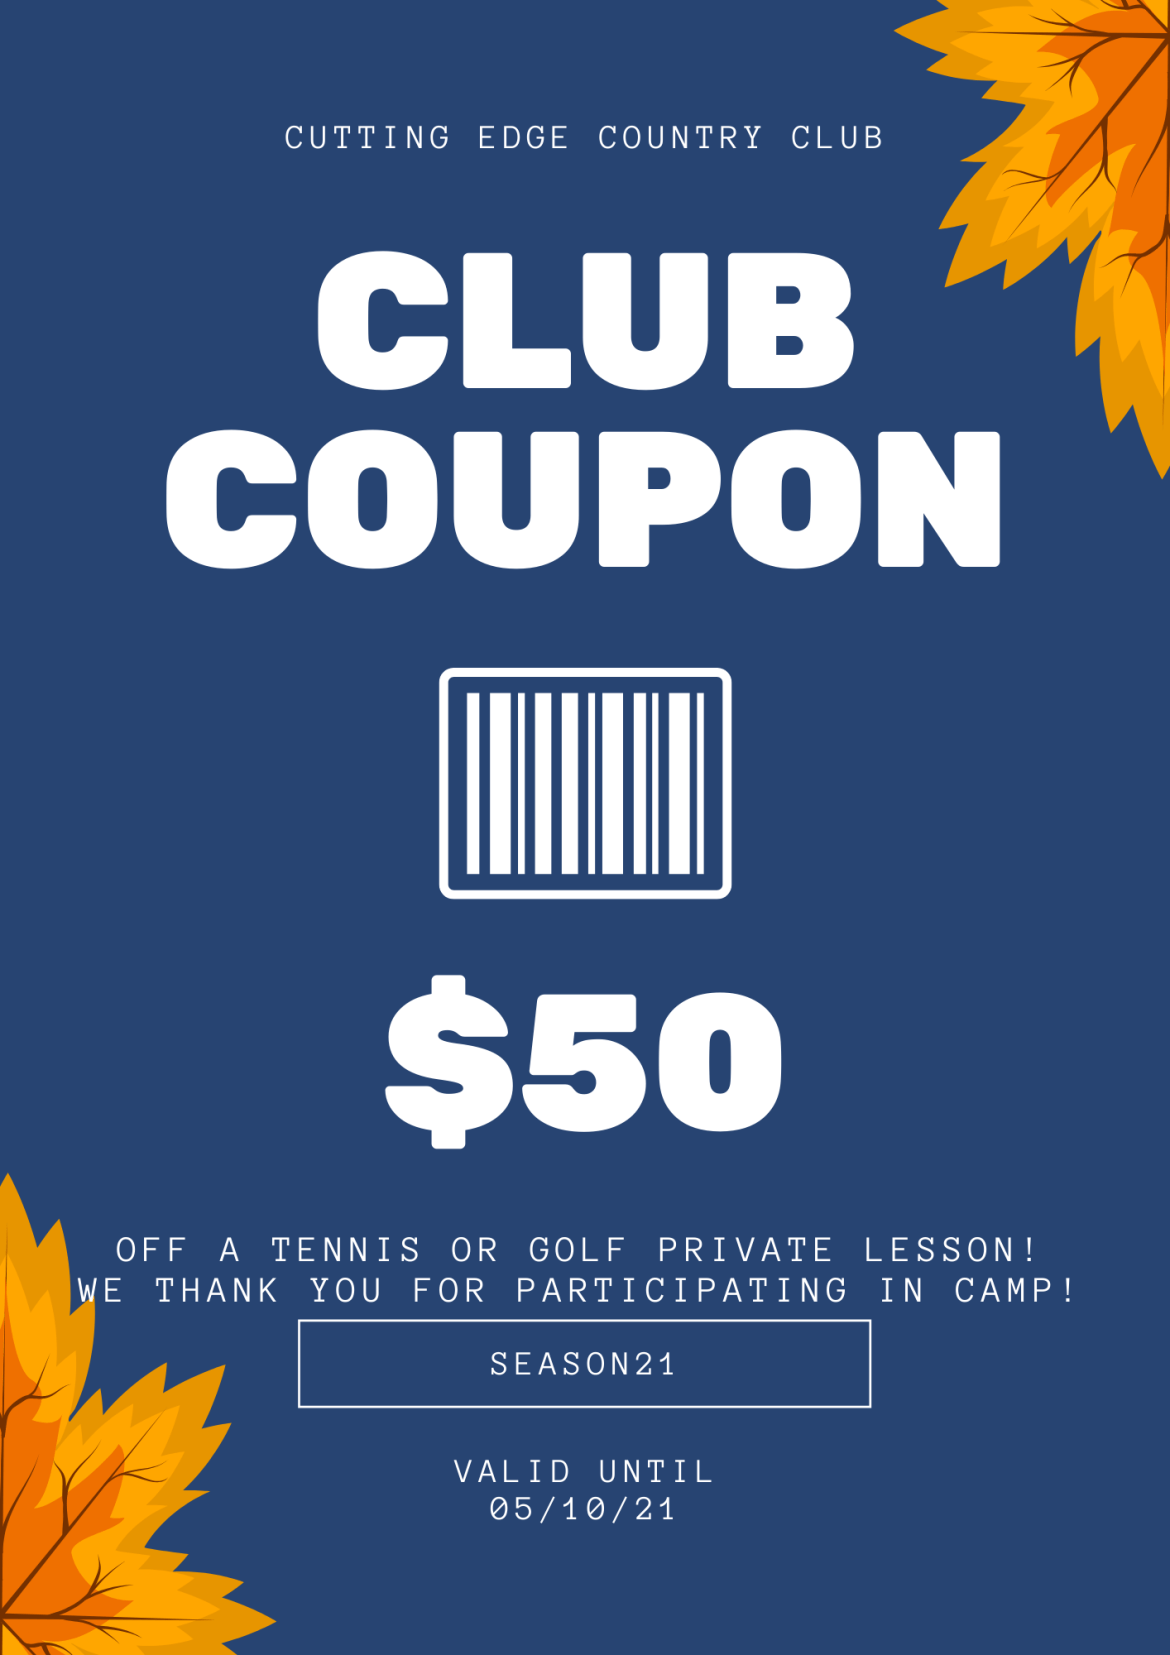 Coupon Marketing Your Club And Your Department! CCC – Country Club Coupons